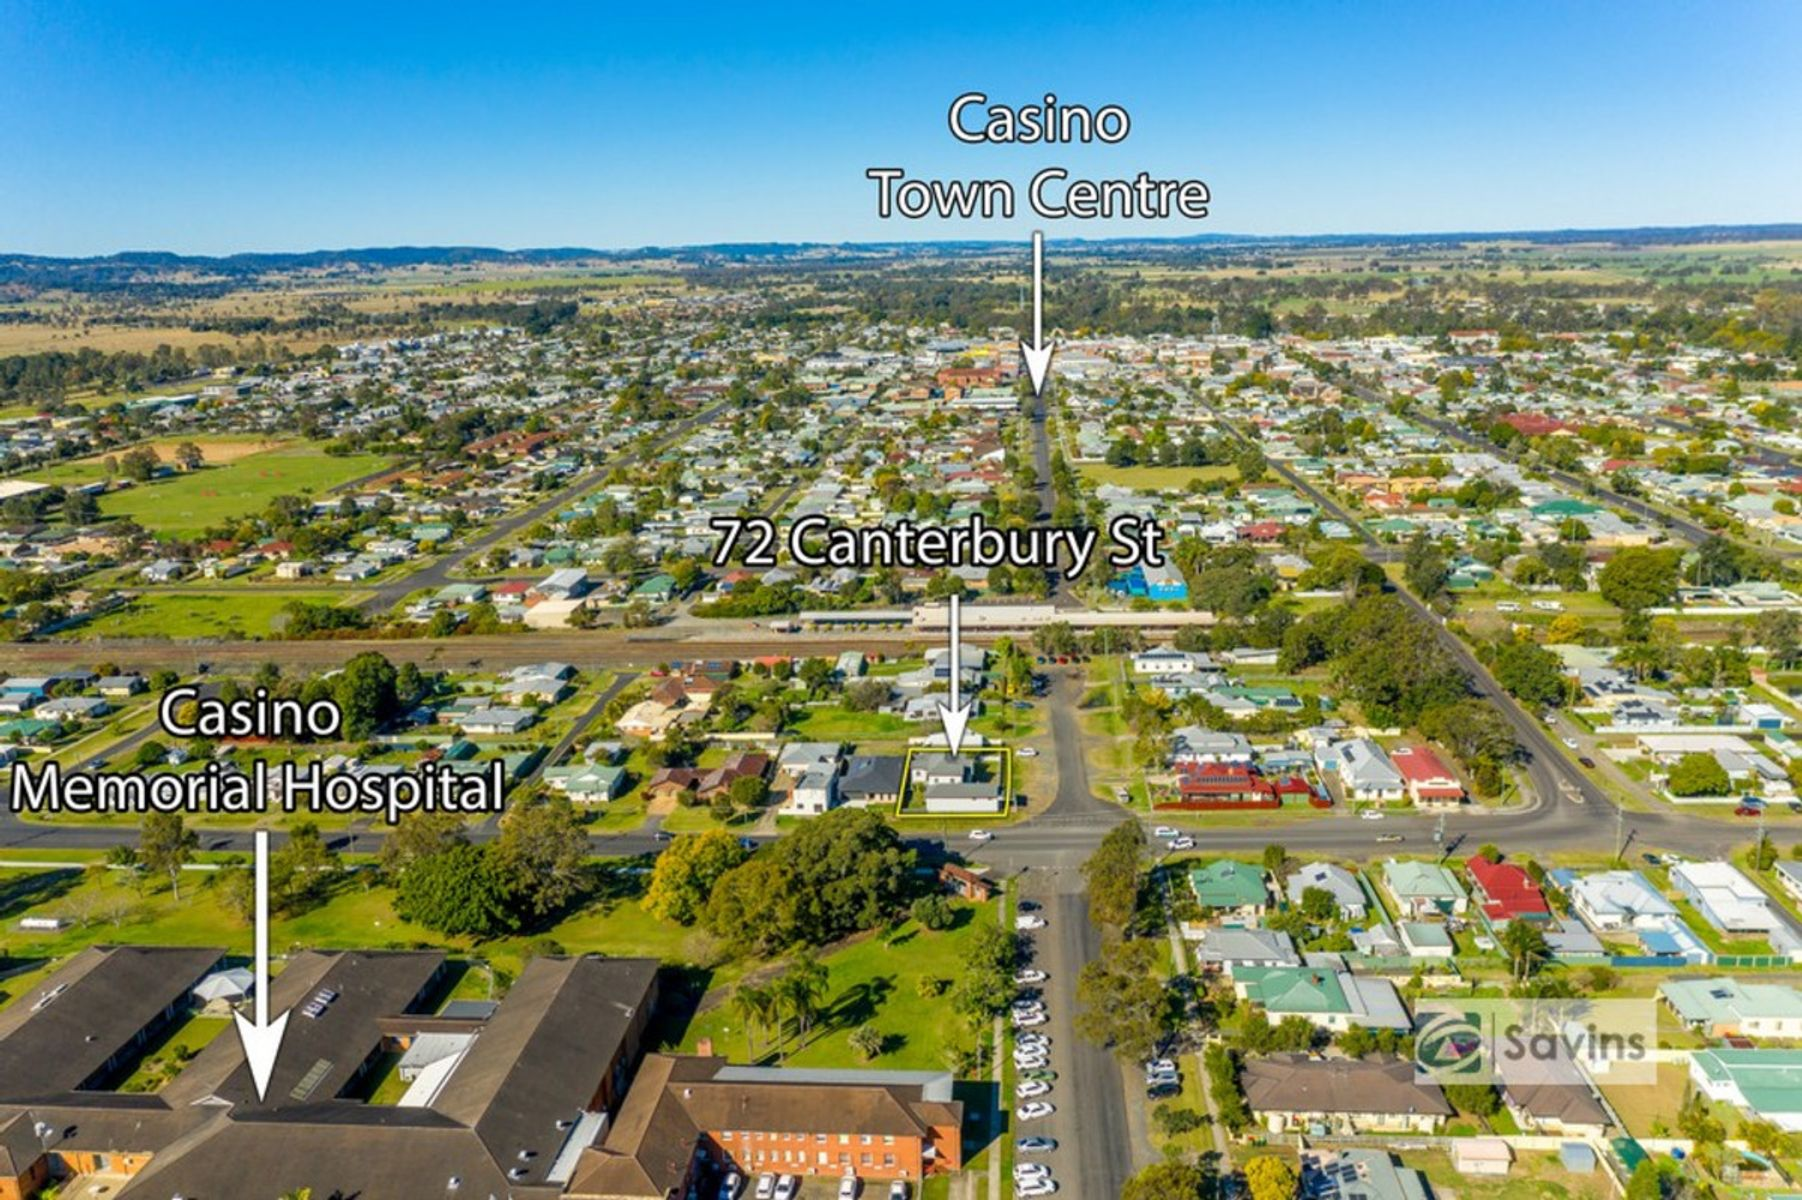 72 Canterbury Street, Casino, NSW 2470